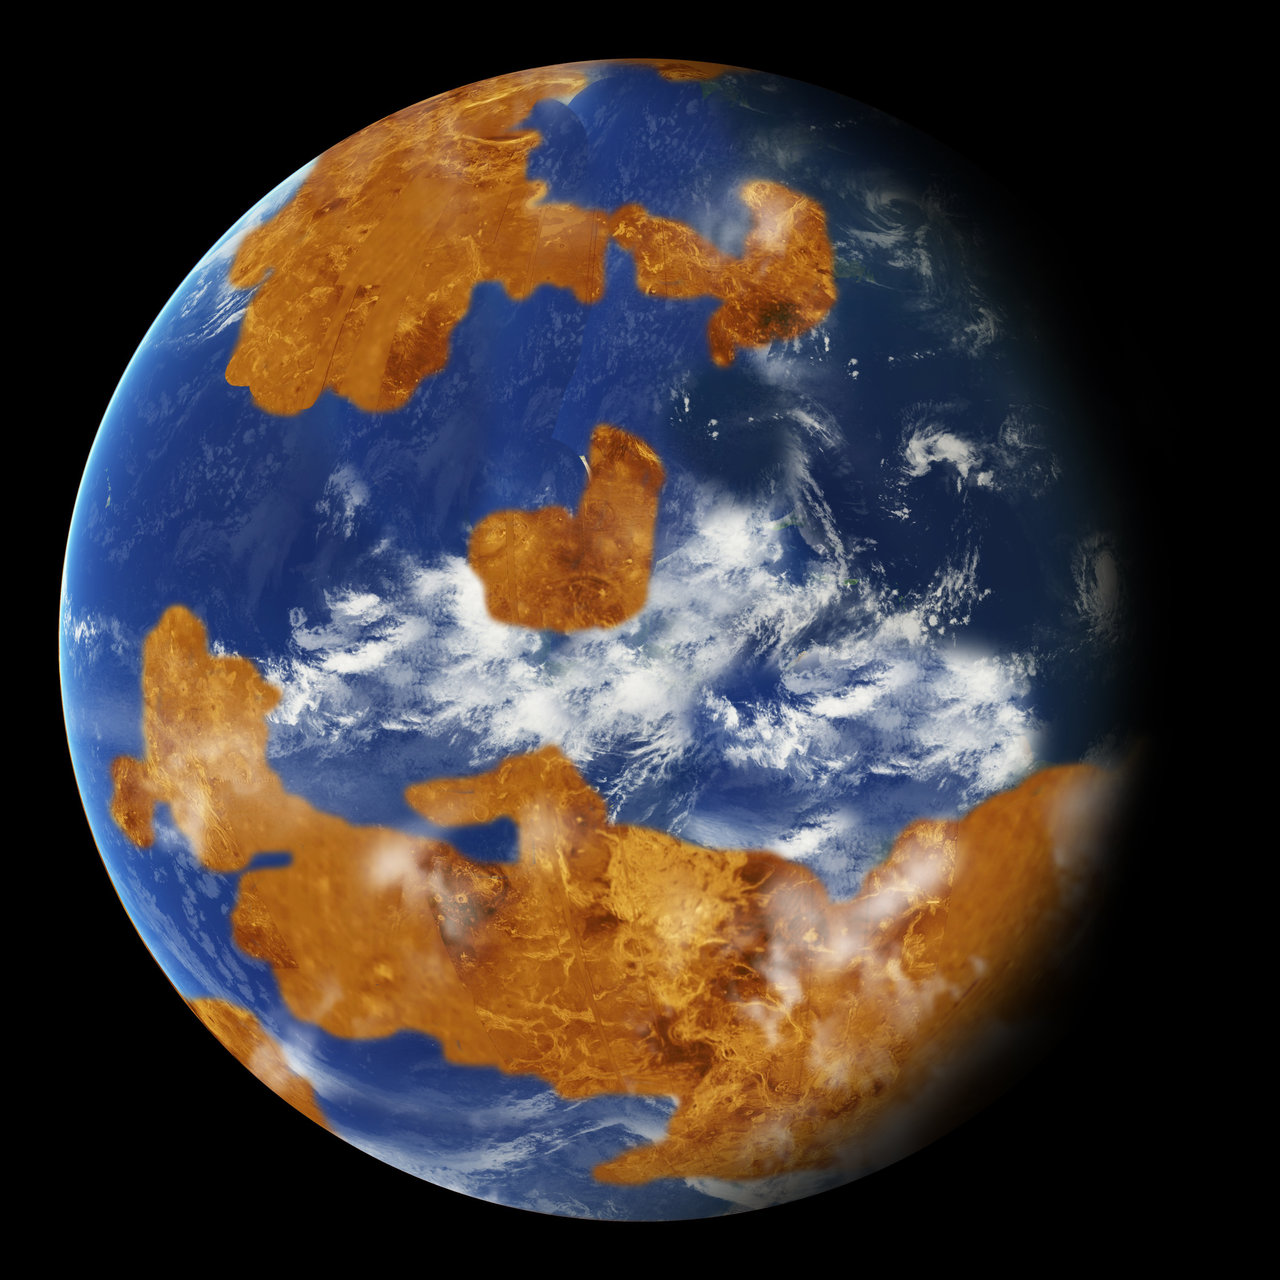 Observations suggest Venus may have had water oceans in its distant past. This artist's concept shows a land-ocean pattern used in a climate model to show how storm clouds could have shielded ancient Venus from strong sunlight and made the planet habitable. Credits: NASA